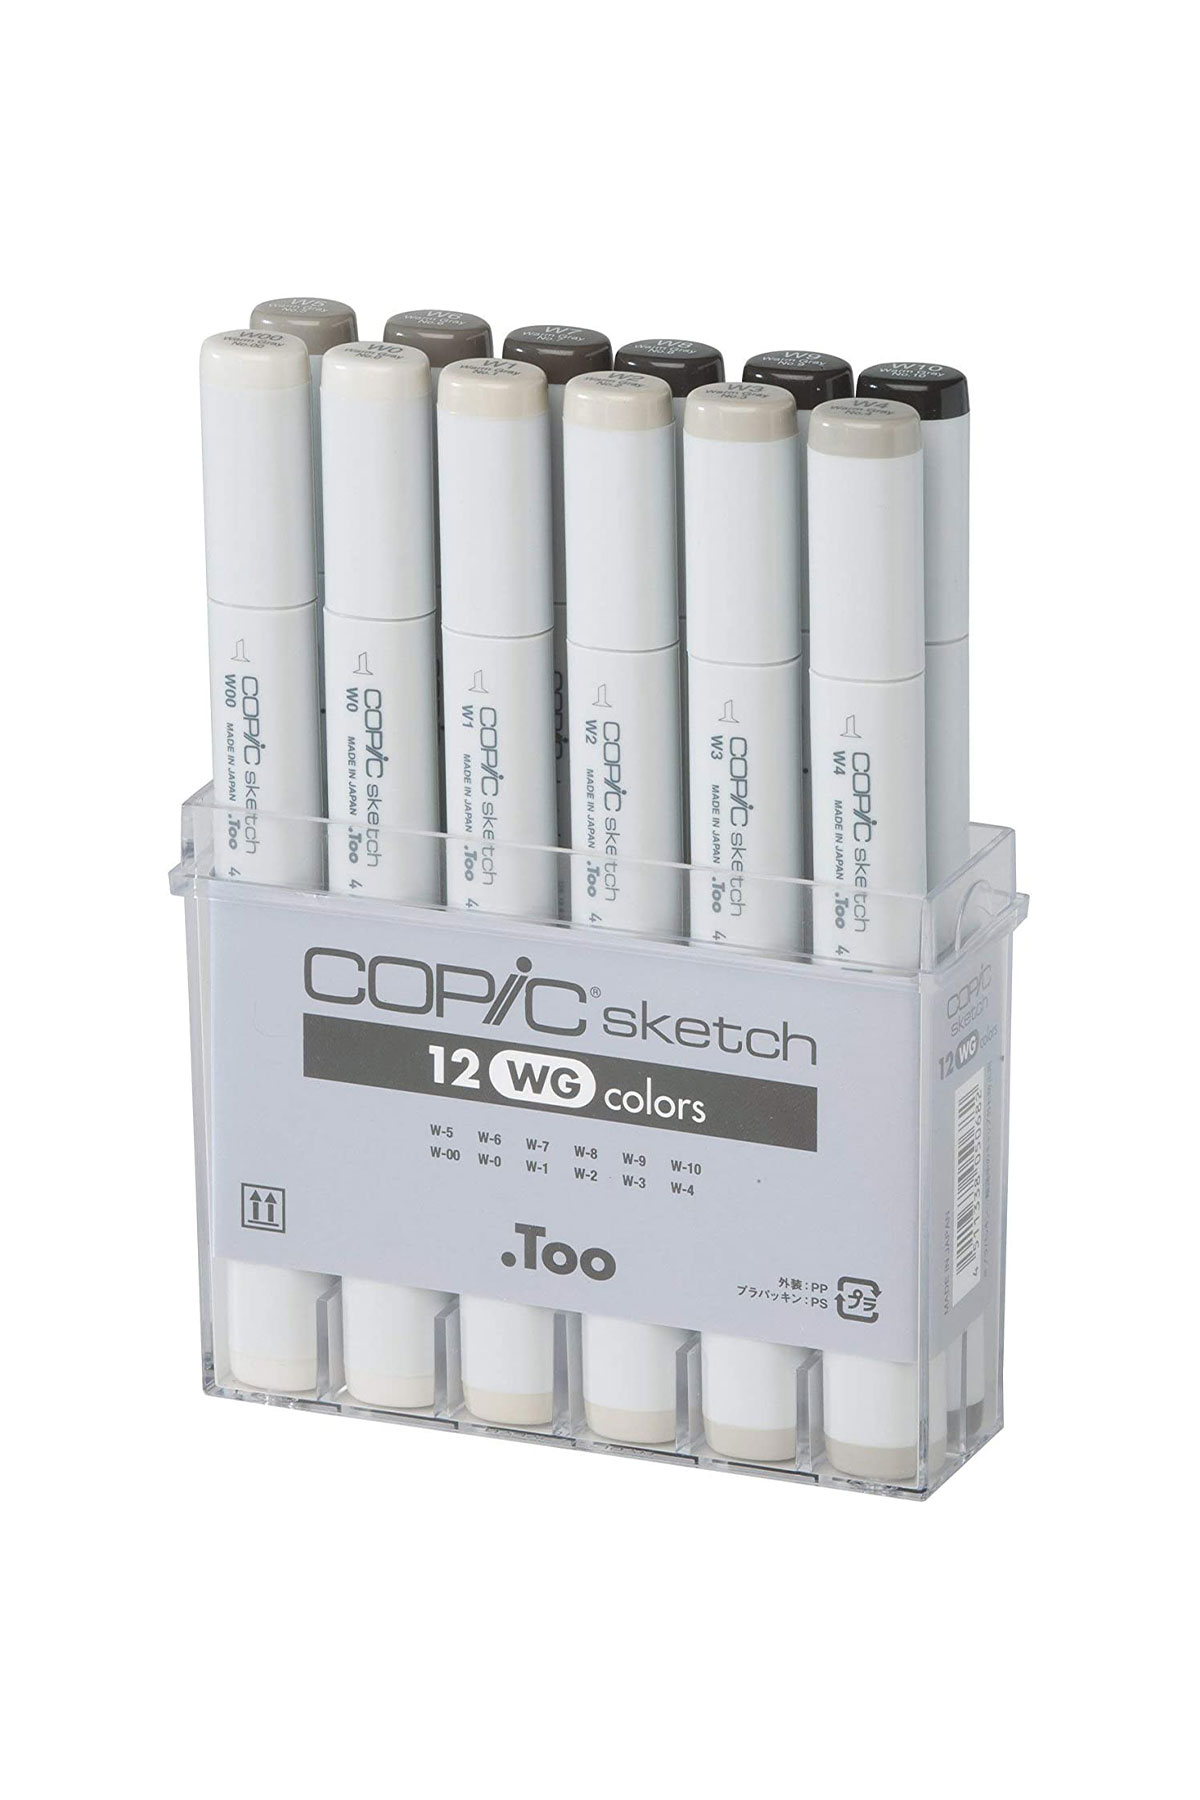 Copic SKETCH MARKER 12 Warm Gray Set